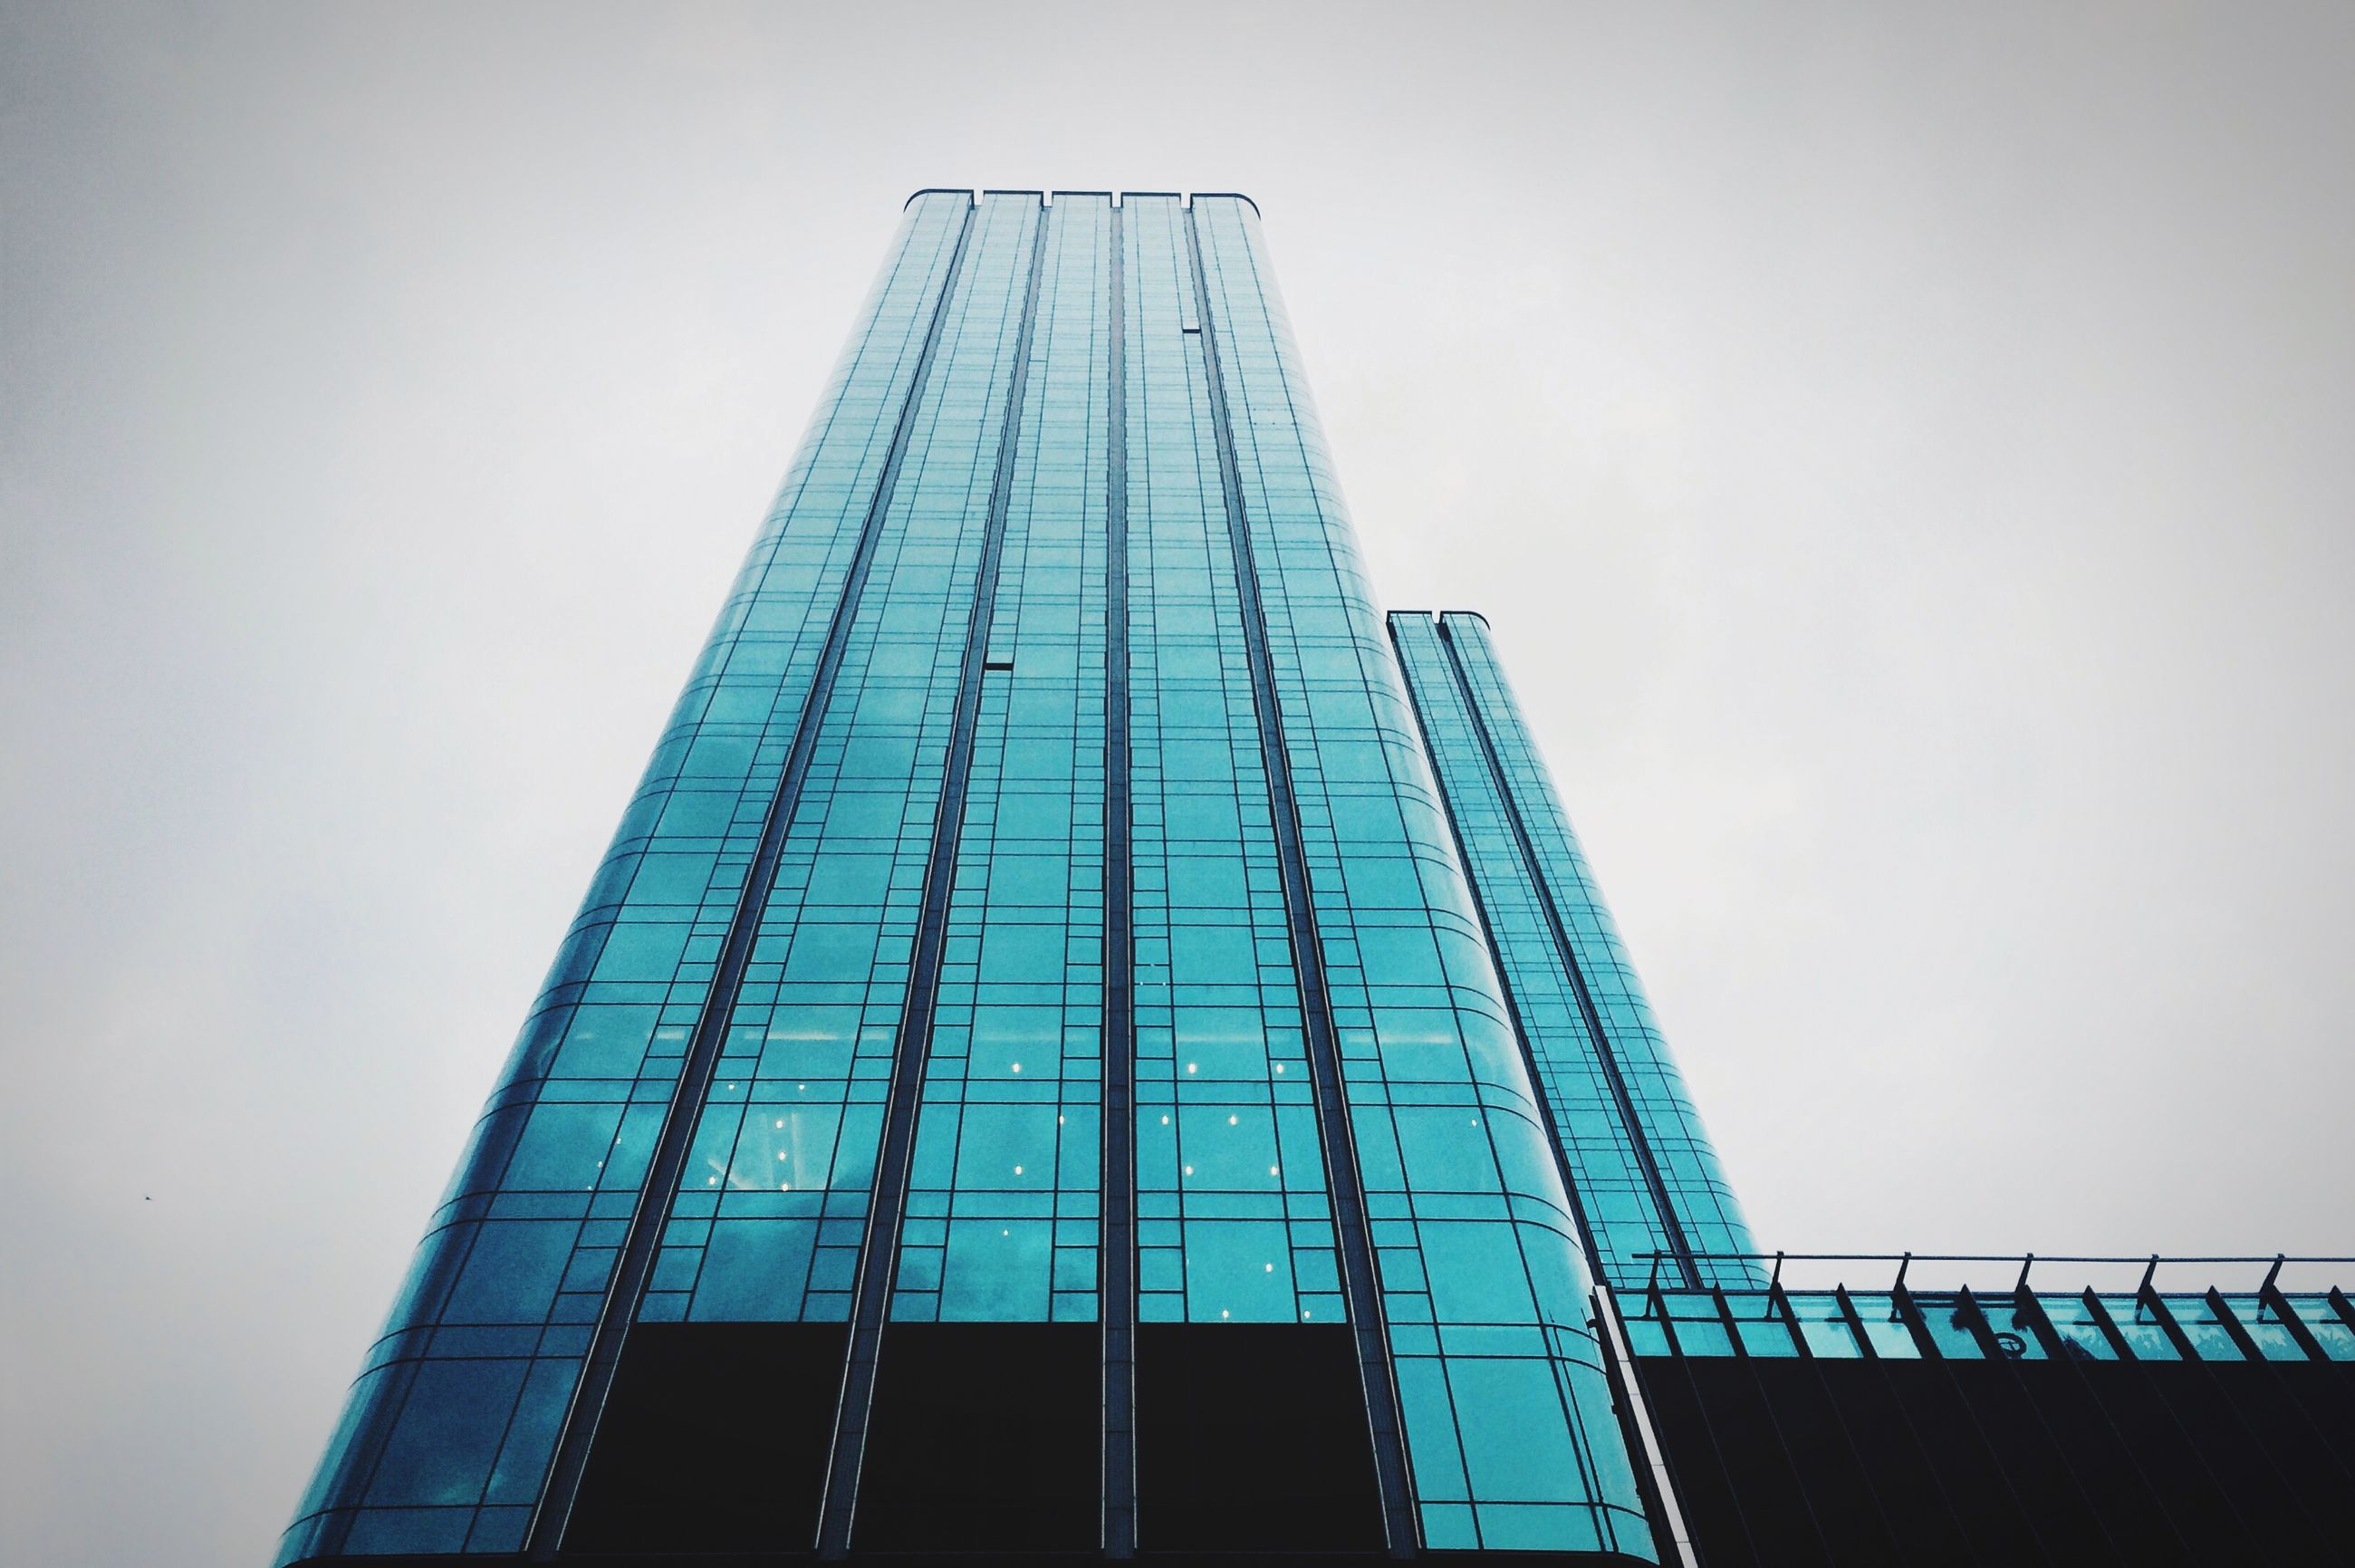 architecture, built structure, building exterior, low angle view, tall - high, clear sky, skyscraper, tower, city, modern, office building, copy space, building, tall, development, sky, day, outdoors, no people, capital cities